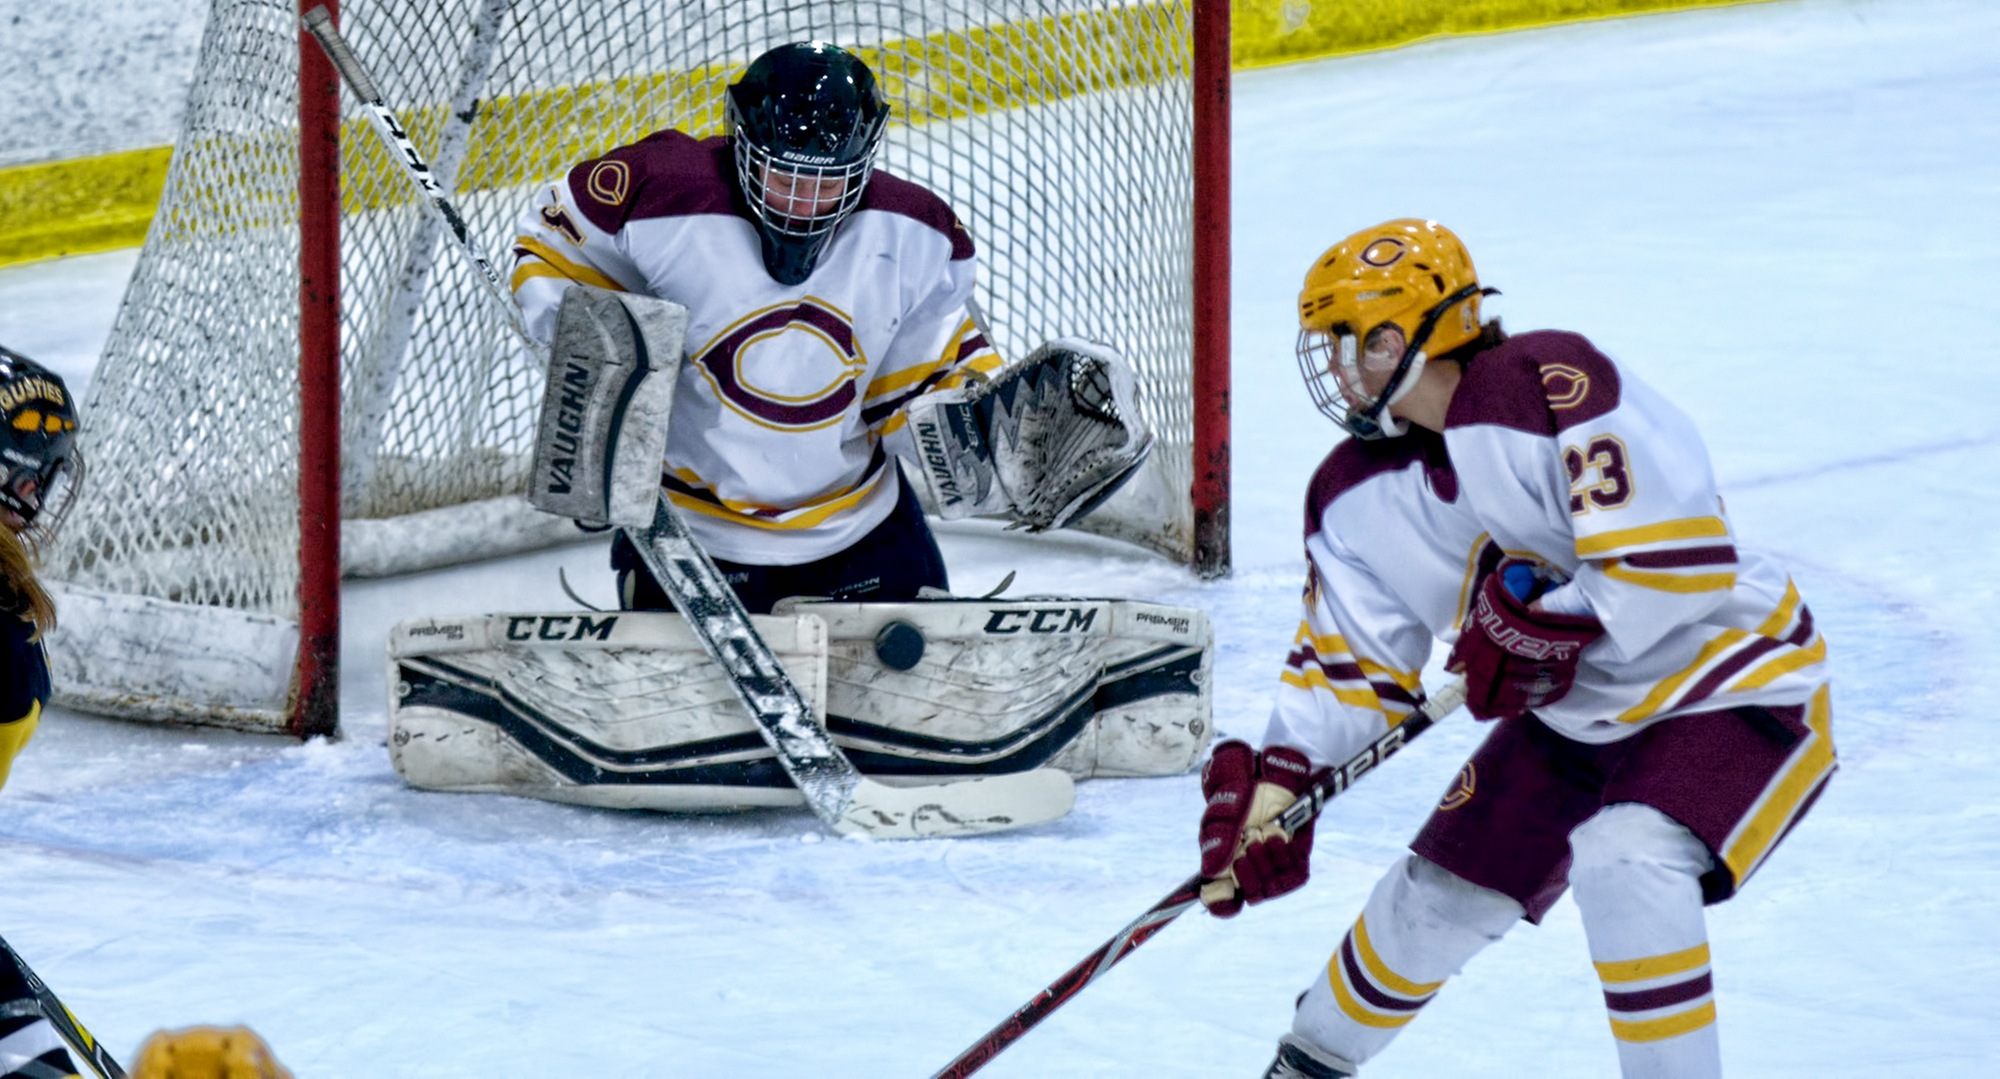 Goalie Amy Jost stopped the final 33 shots she faced to help Concordia earn a 2-2 OT tie at Augsburg and gain a spot in the MIAC playoffs.